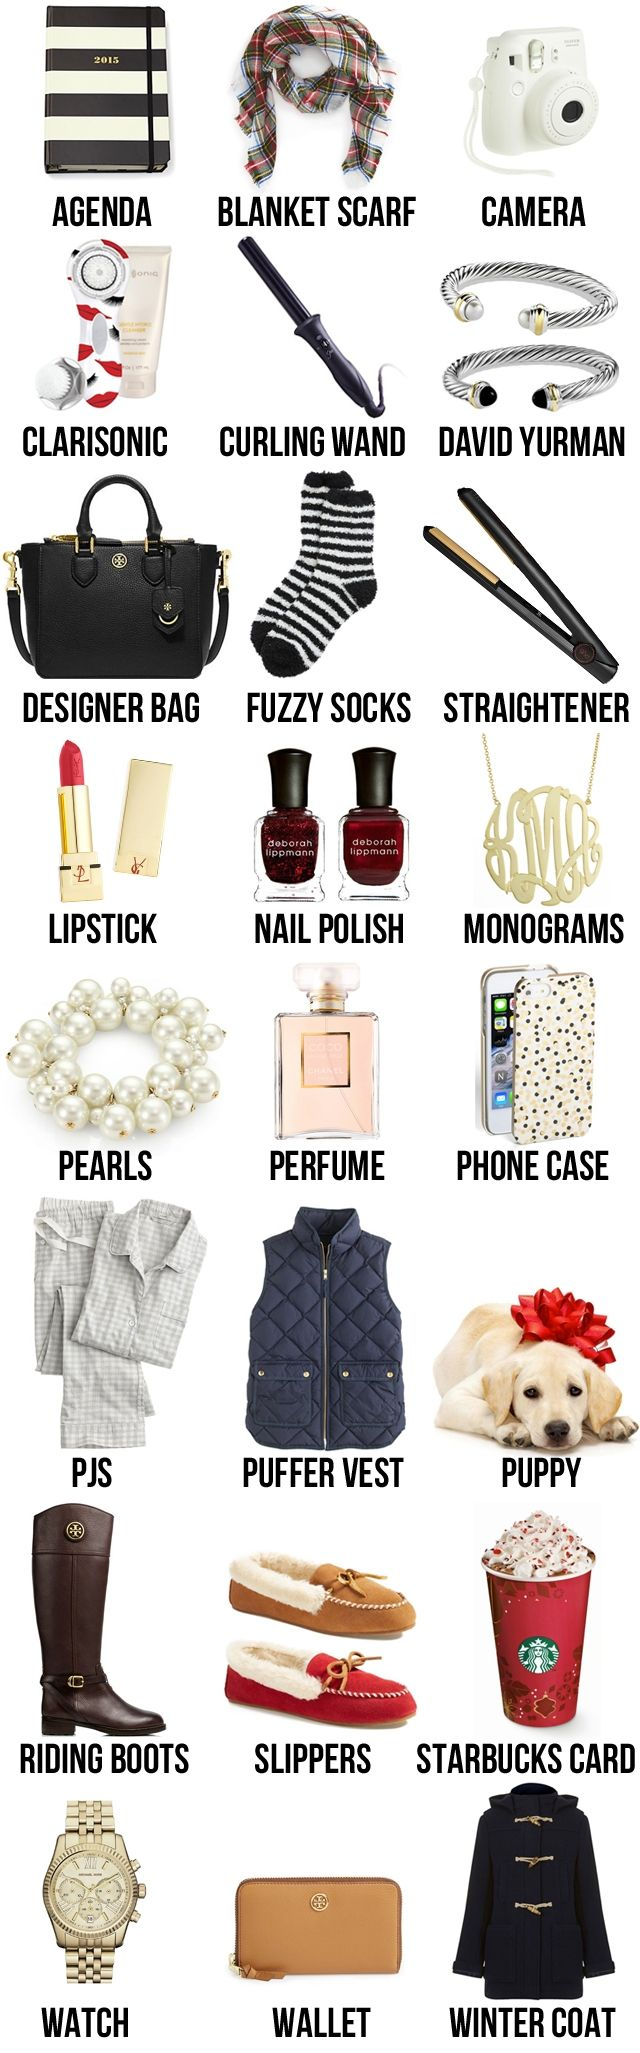 Stumped On What To Ask For This Christmas List Has Everything All Your Basic White Needs